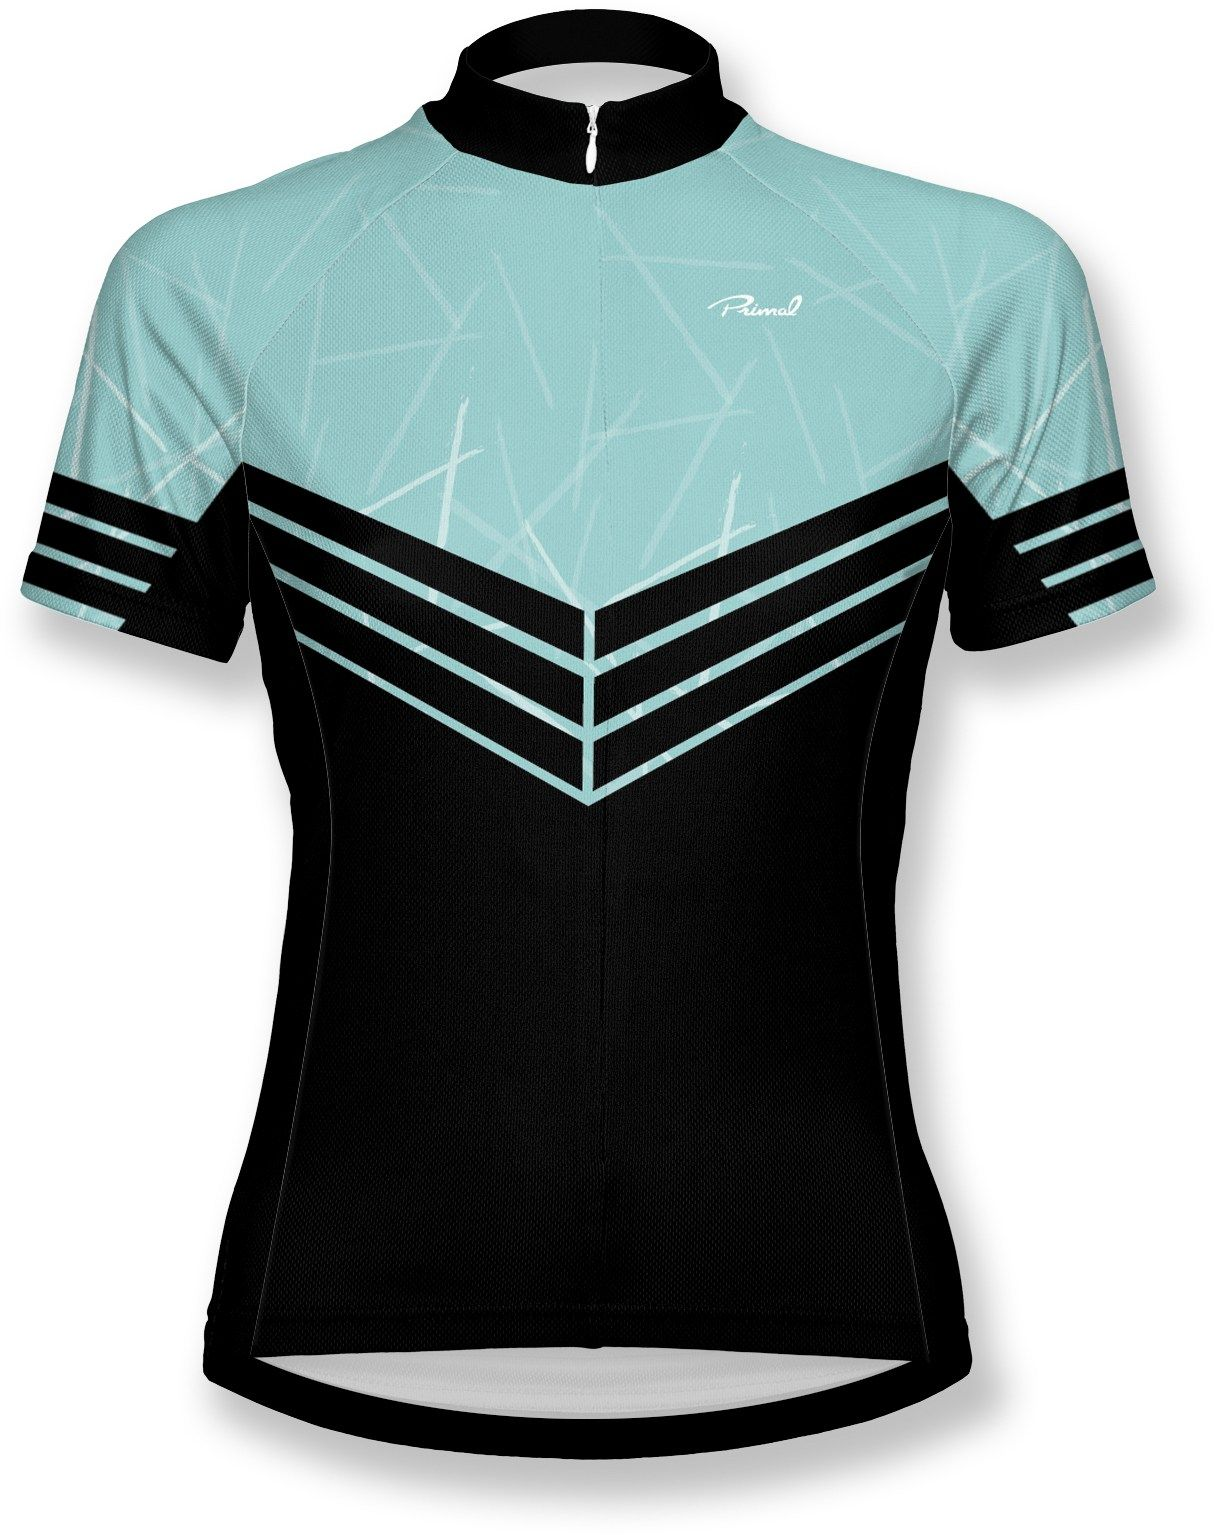 Primal Wear Force Bike Jersey - Women s - 2012 Overstock at REI-OUTLET.com 6747fa15d